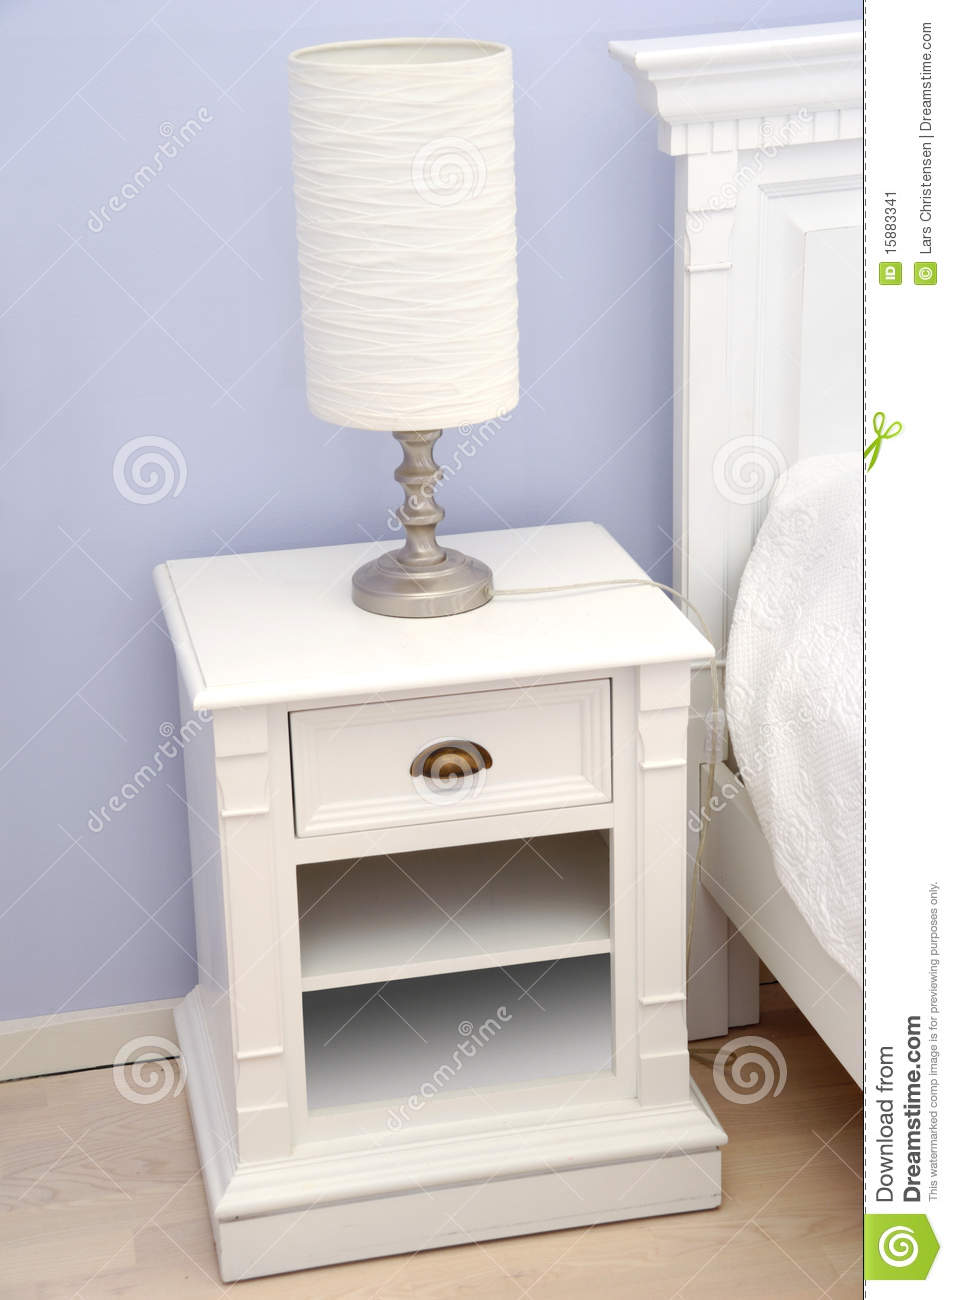 Table de chevet avec la lampe image stock image 15883341 for Idee table de chevet